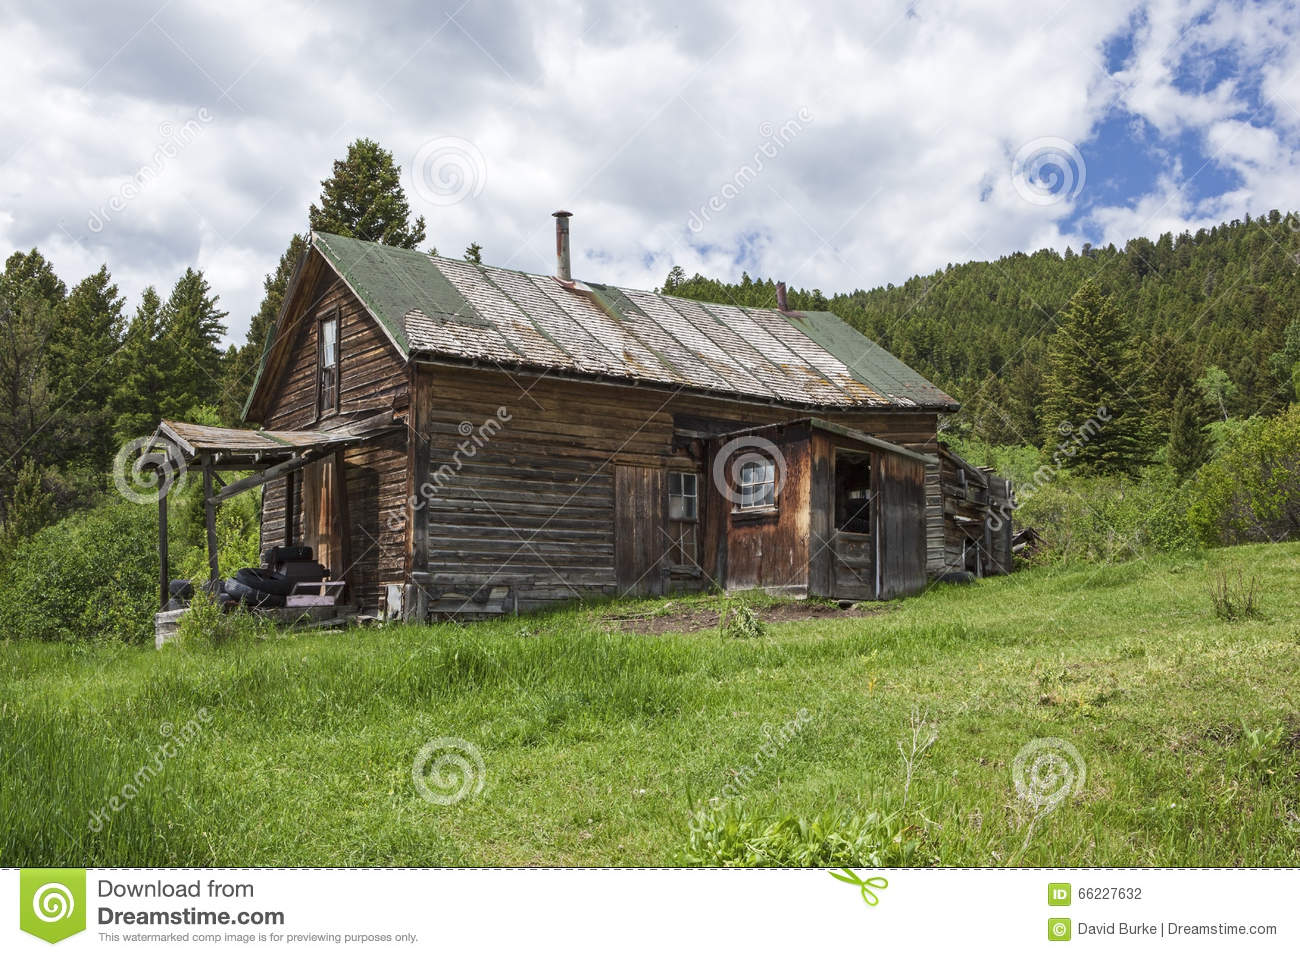 Stock Photo Old Weathered Farmhouse Mountains Grass Ancient Rustic Dilapidated Mountain Homestead Sits Abandoned Cloudy Image66227632 on old time farmhouse plans